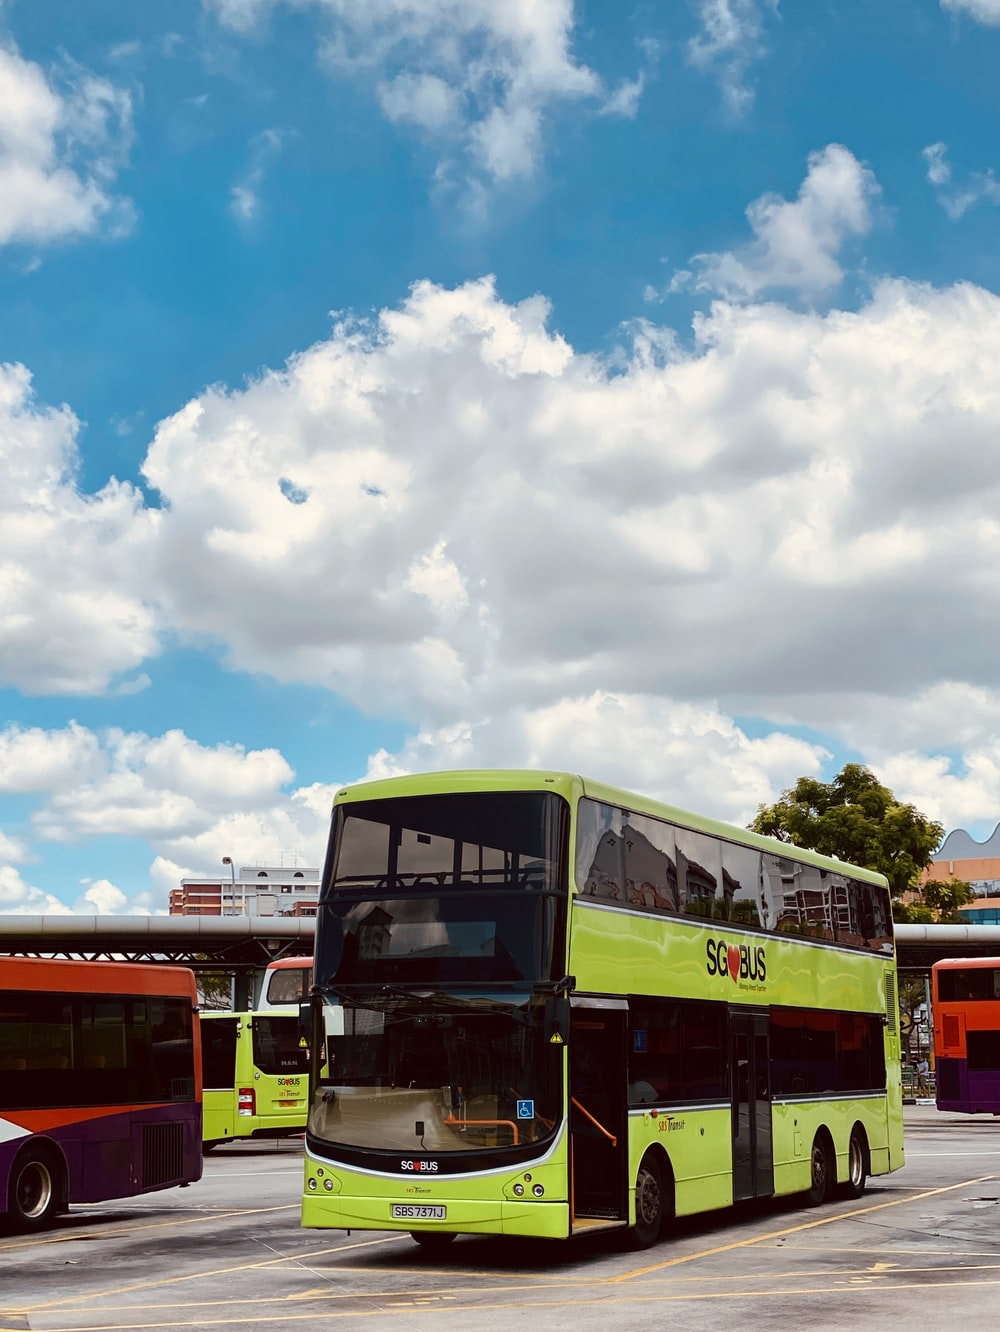 red and white bus under blue sky during daytime